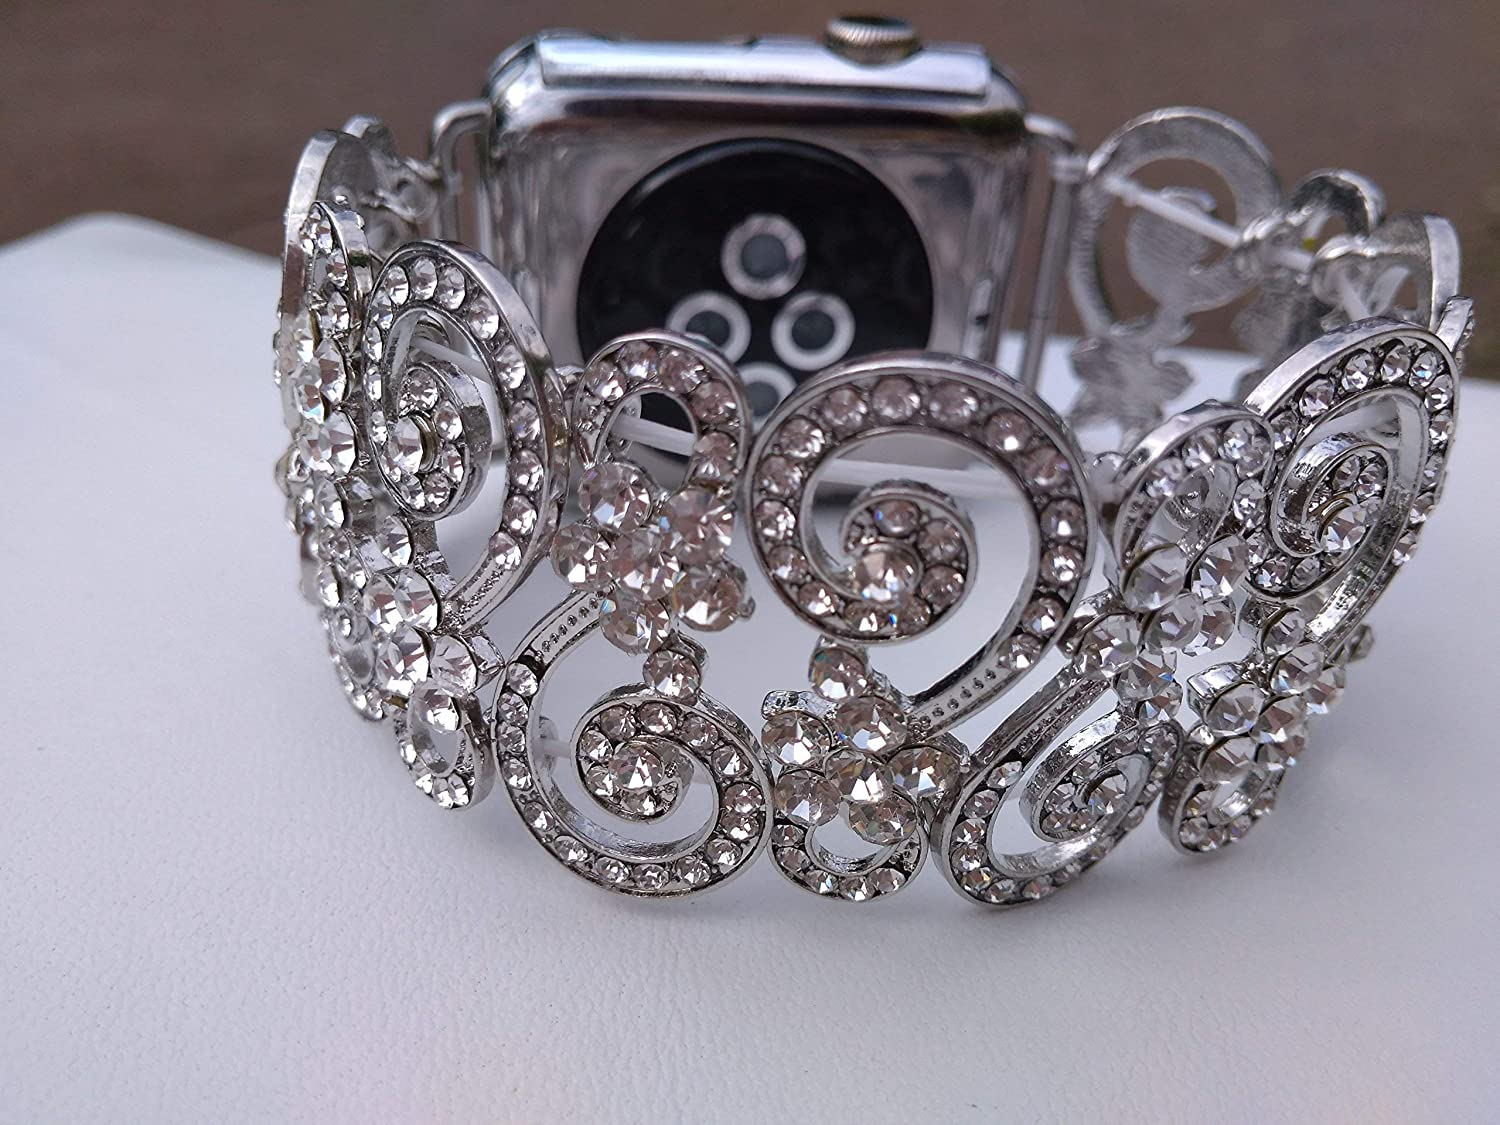 Rhinestone Apple Watch Band 38mm, bling, 42 mm rose gold Silver Apple iWatch Band 38 mm Bracelet,